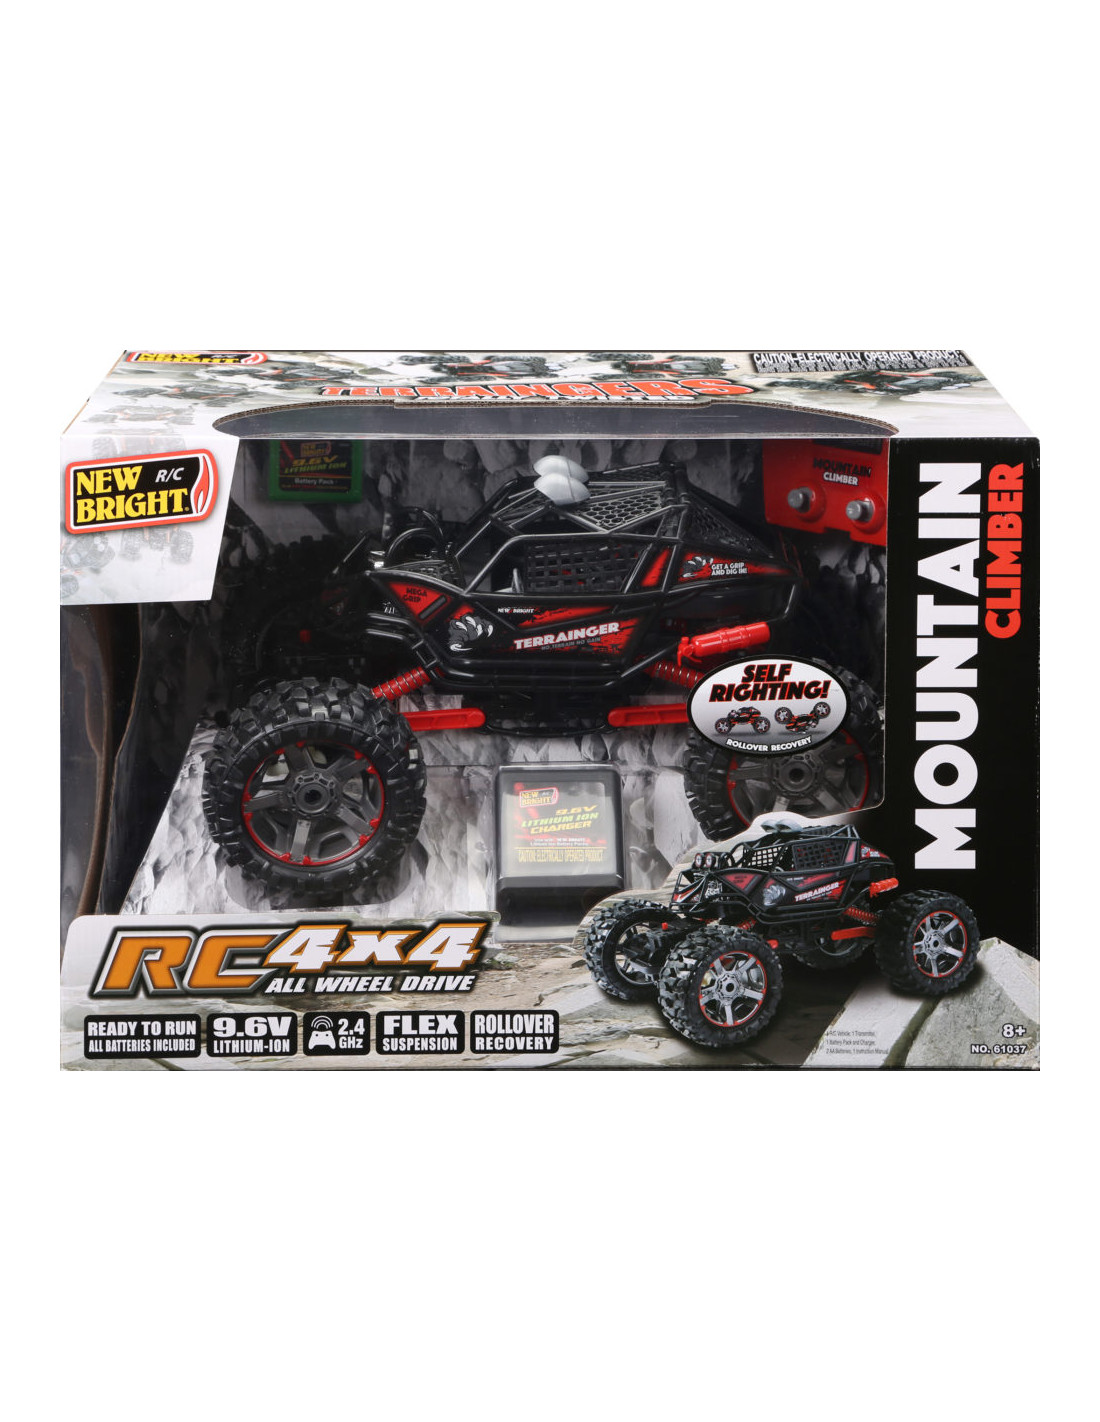 New Bright 1:10 4x4 Mountain Climber